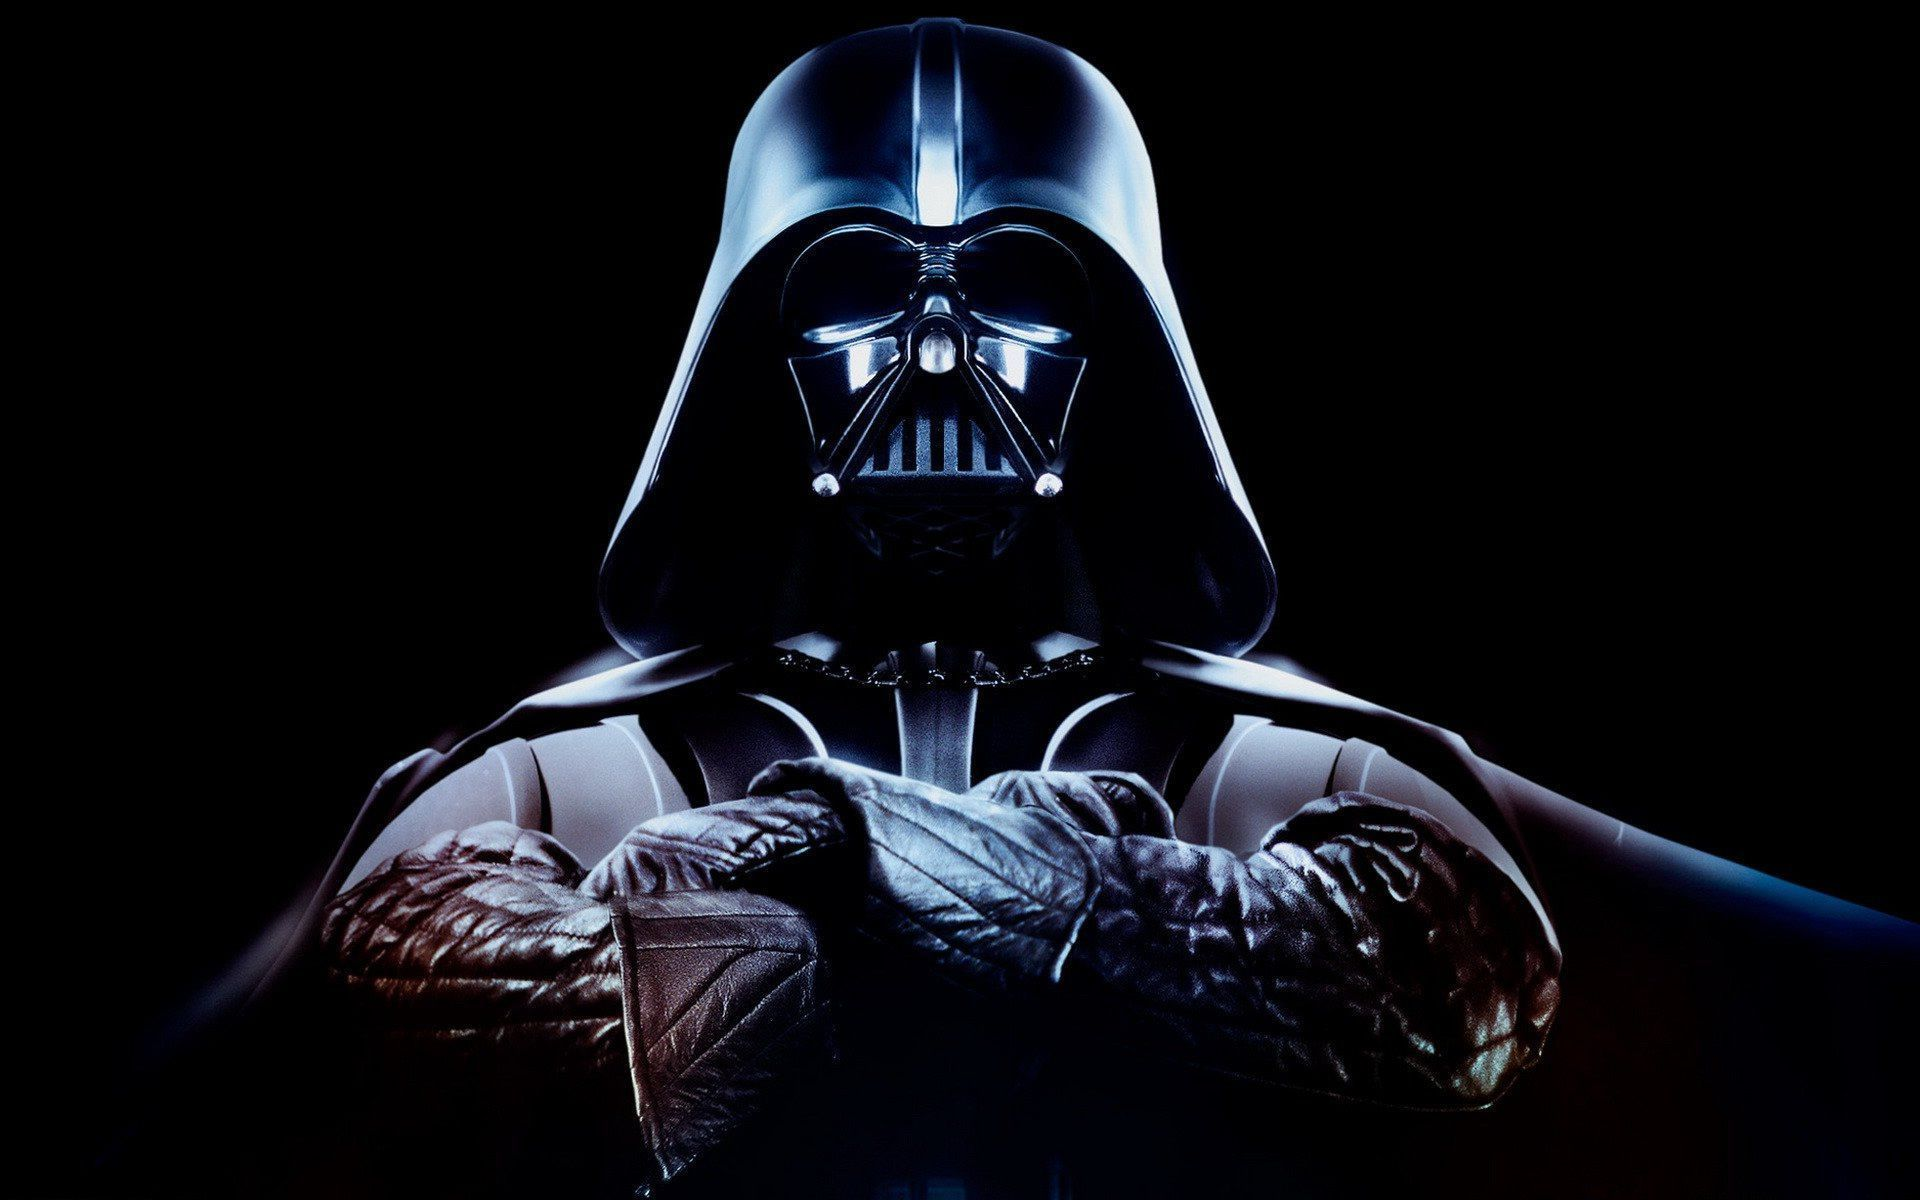 Darth Vader Wallpaper Star Wars Darth Star Wars Vii Star